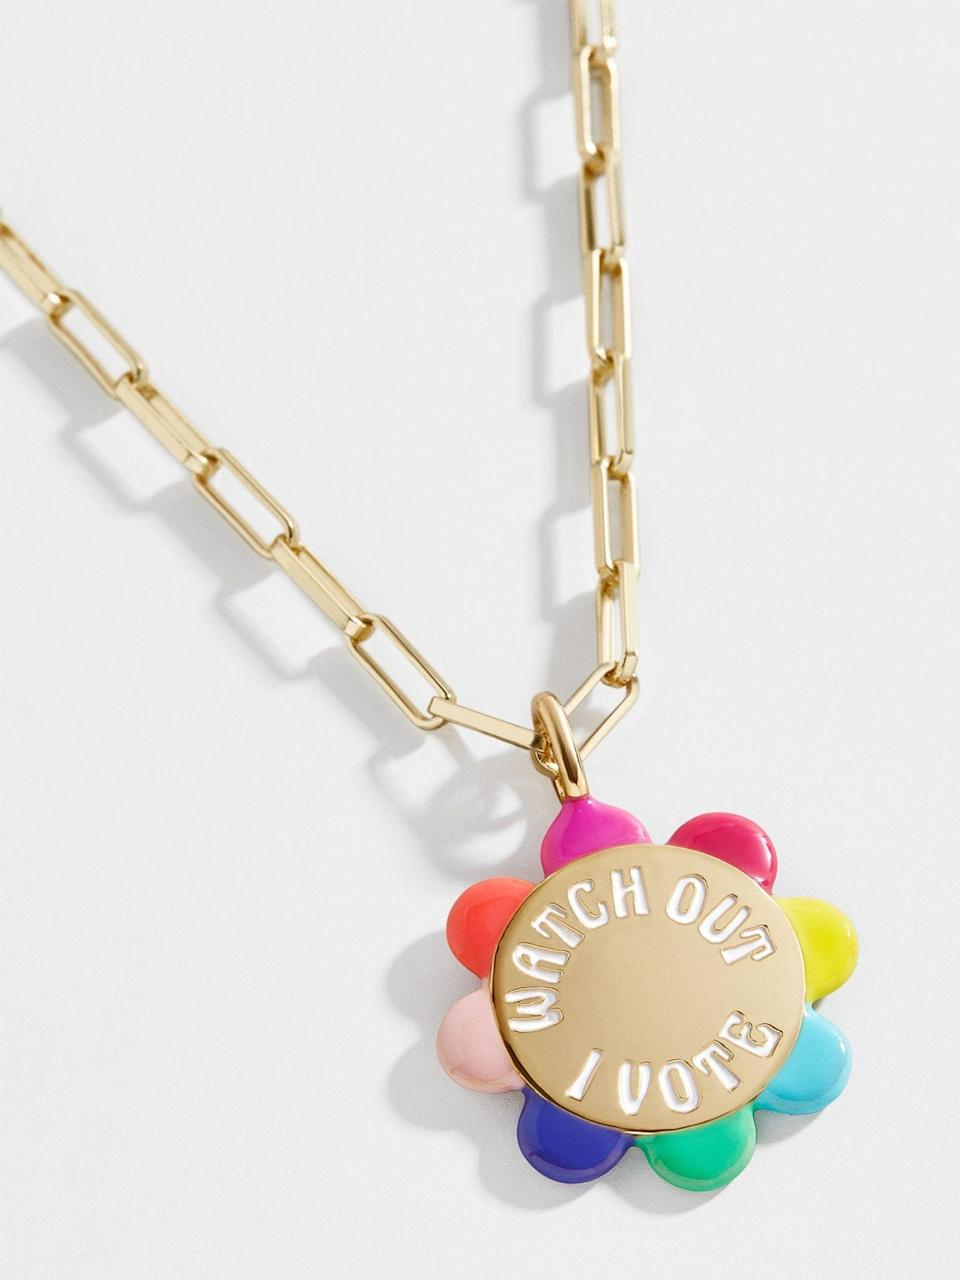 """<p><strong>Baublebar</strong></p><p>baublebar.com</p><p><strong>$42.00</strong></p><p><a href=""""https://go.redirectingat.com?id=74968X1596630&url=https%3A%2F%2Fwww.baublebar.com%2Fproduct%2F53200-i-vote-necklace&sref=https%3A%2F%2Fwww.marieclaire.com%2Ffashion%2Fg33585252%2Fvoter-merchandise%2F"""" rel=""""nofollow noopener"""" target=""""_blank"""" data-ylk=""""slk:SHOP IT"""" class=""""link rapid-noclick-resp"""">SHOP IT</a></p><p>Ten percent of all proceeds from this fun """"Watch Out I Vote"""" necklace will be donated to I am a voter. </p>"""